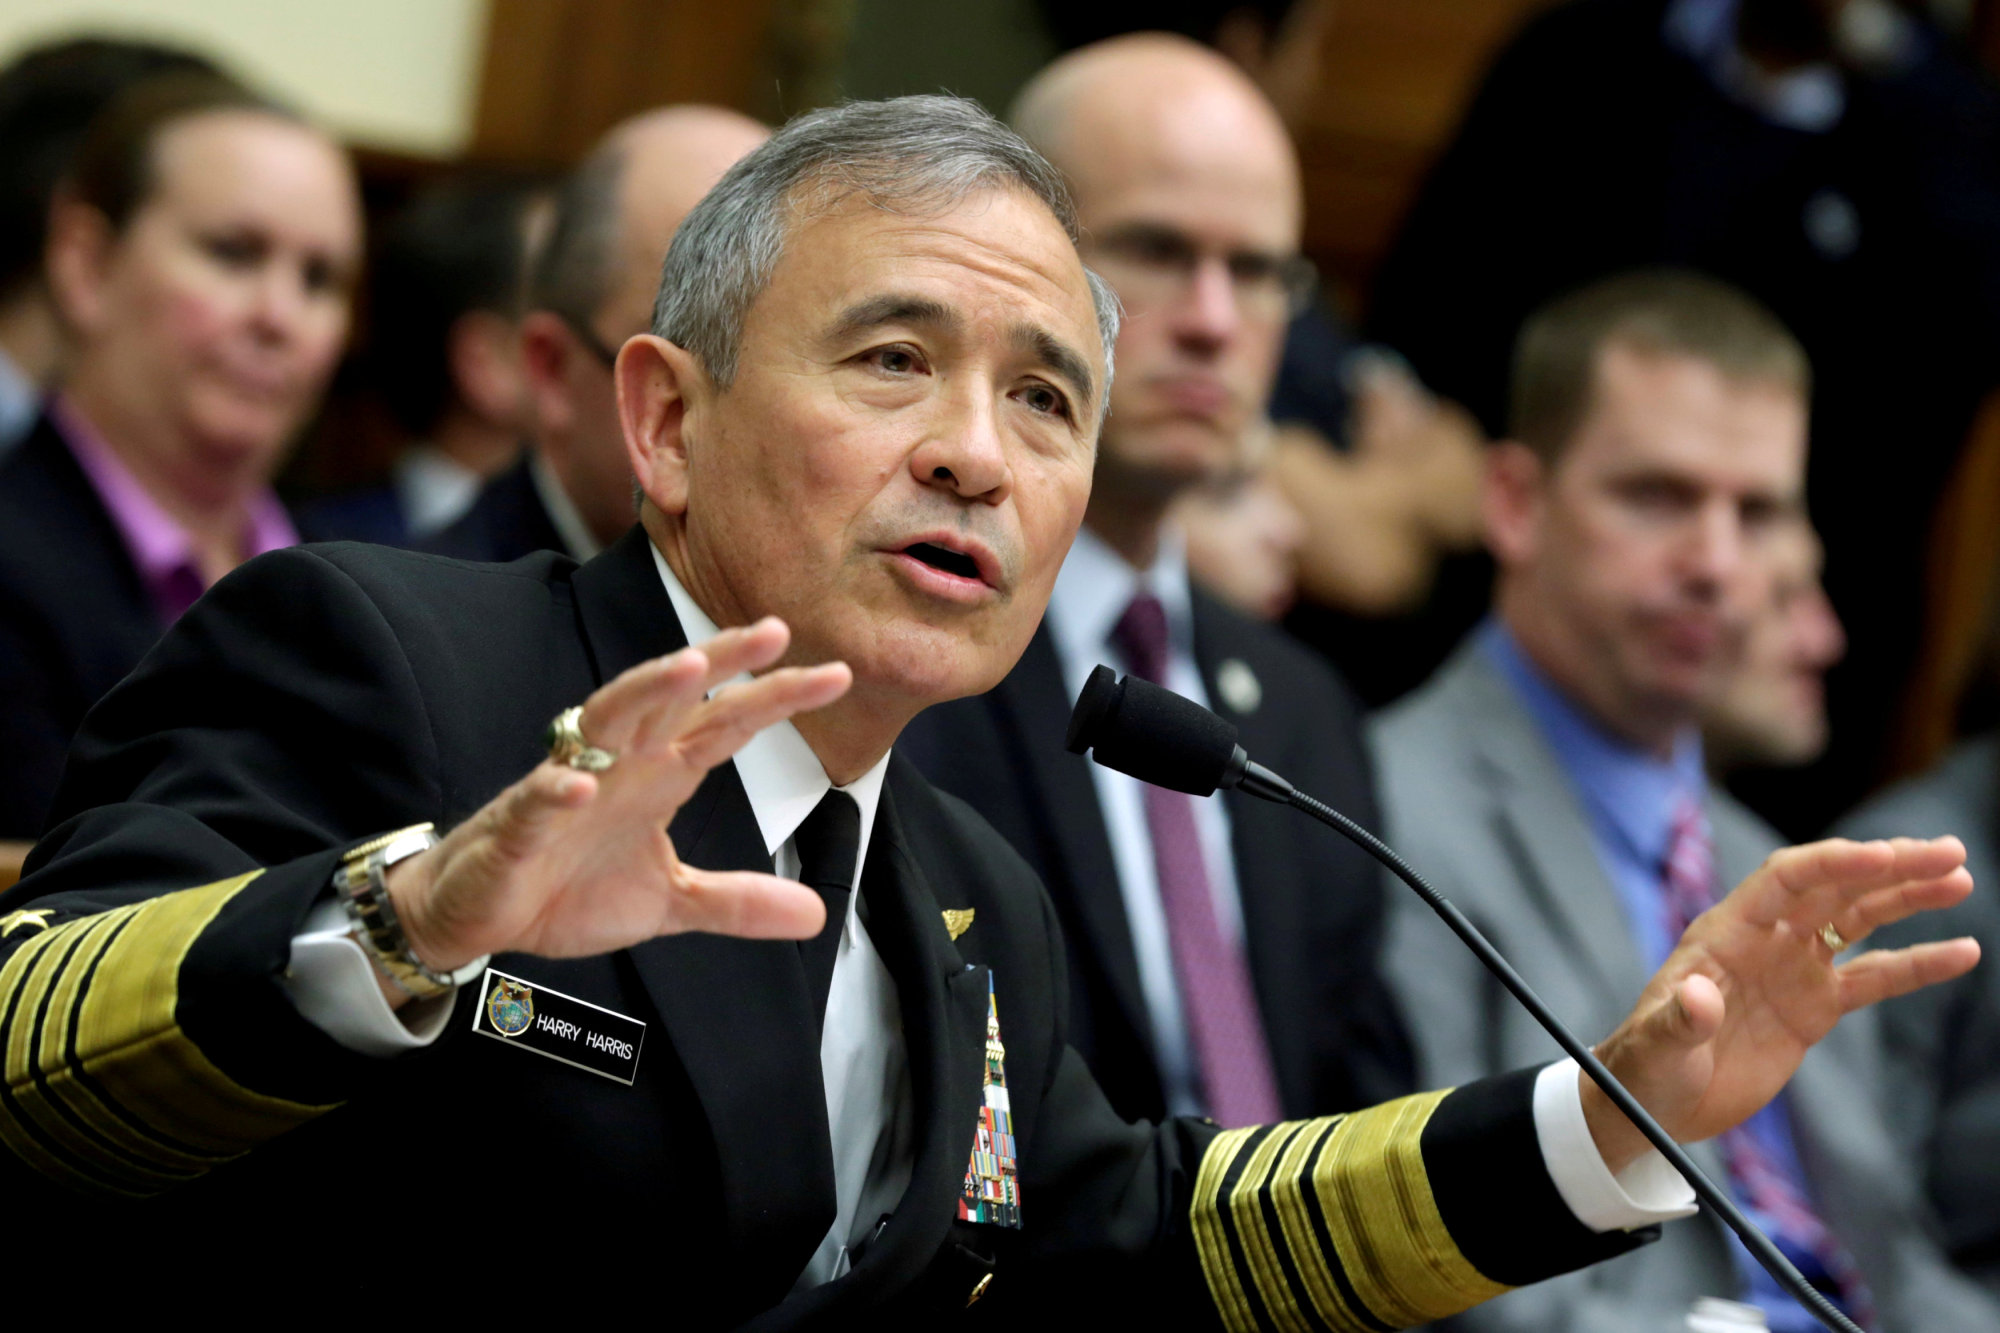 Adm. Harry Harris testifies before a House Armed Services Committee hearing on April 26. | REUTERS